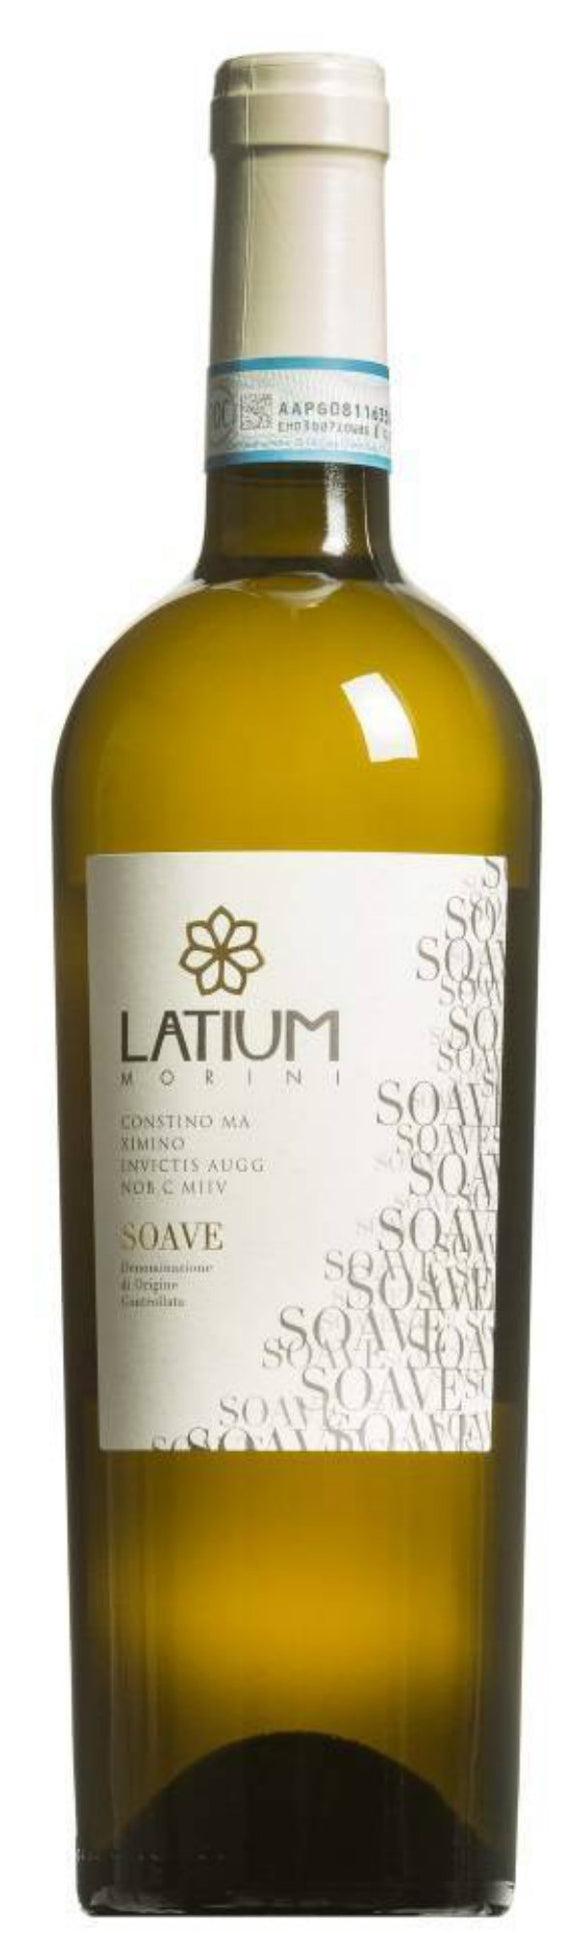 Latium / Soave / 750mL